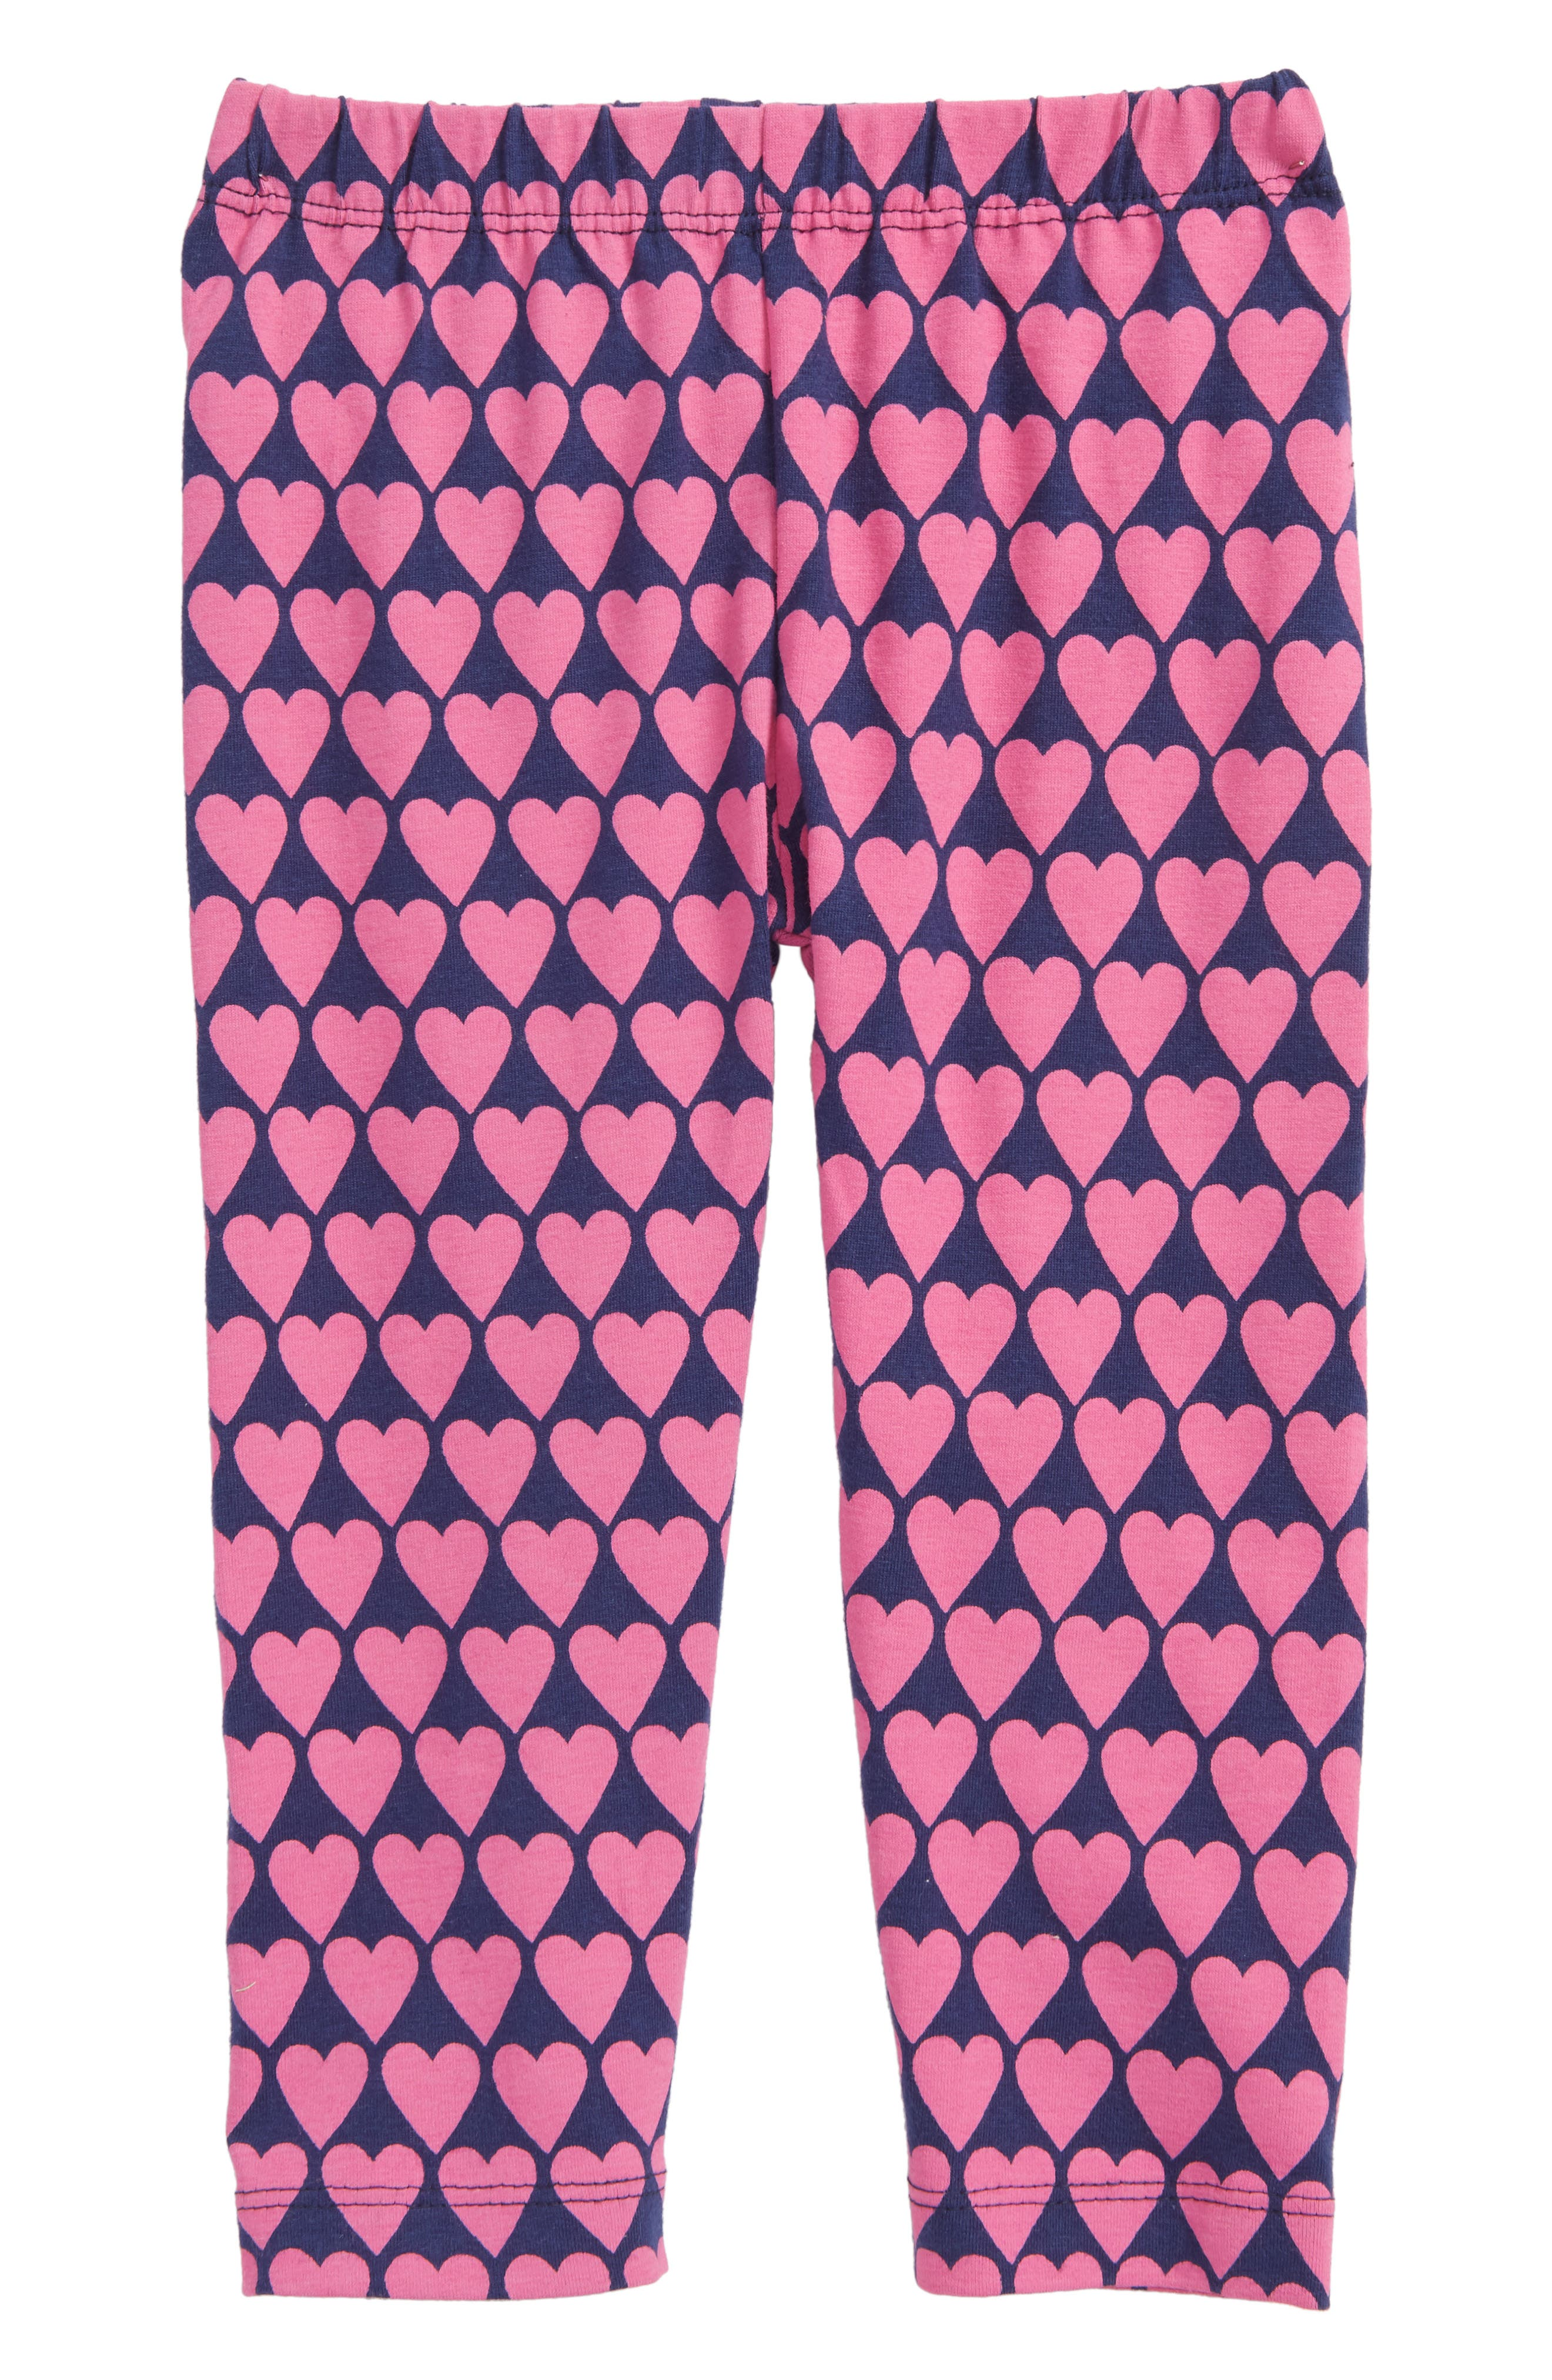 Alternate Image 1 Selected - Hatley Stretch Leggings (Baby Girls)